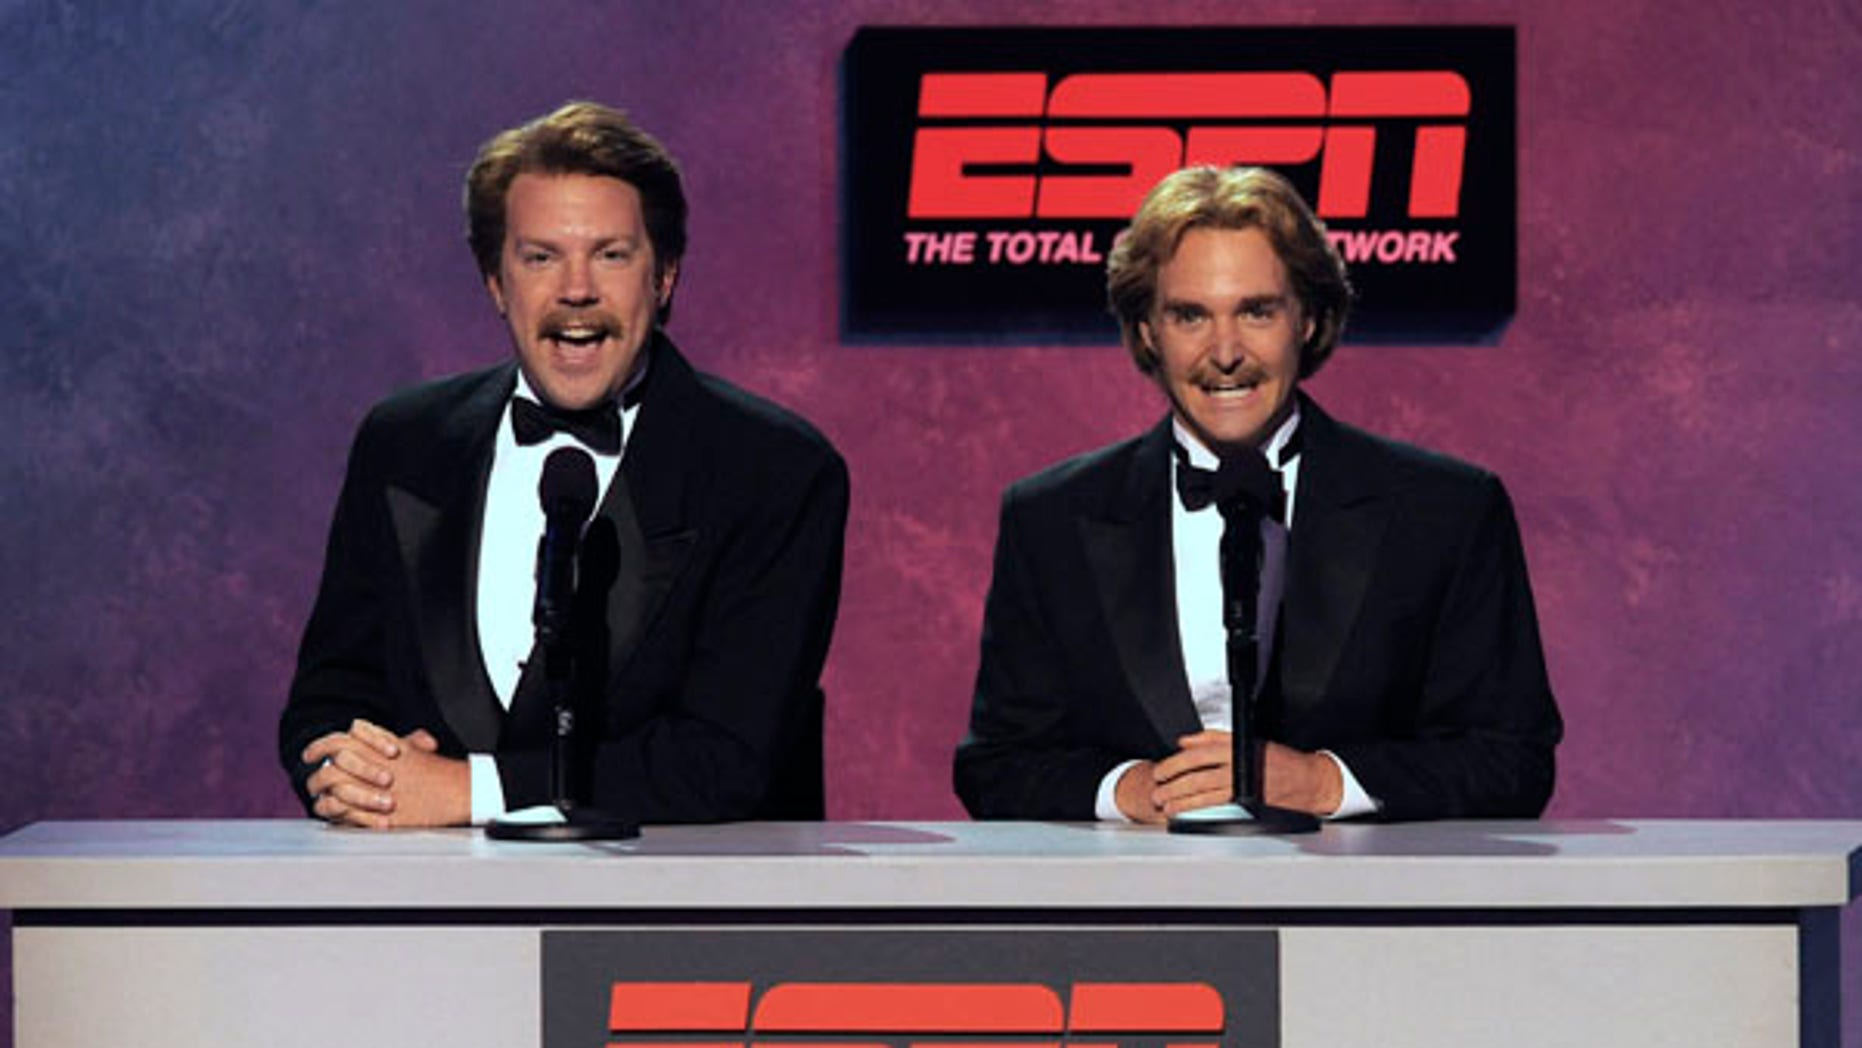 Jason Sudeikis, left, and Will Forte are seen at the ESPY Awards on Wednesday, July 14, 2010 in Los Angeles. (AP Photos/Chris Pizzello)